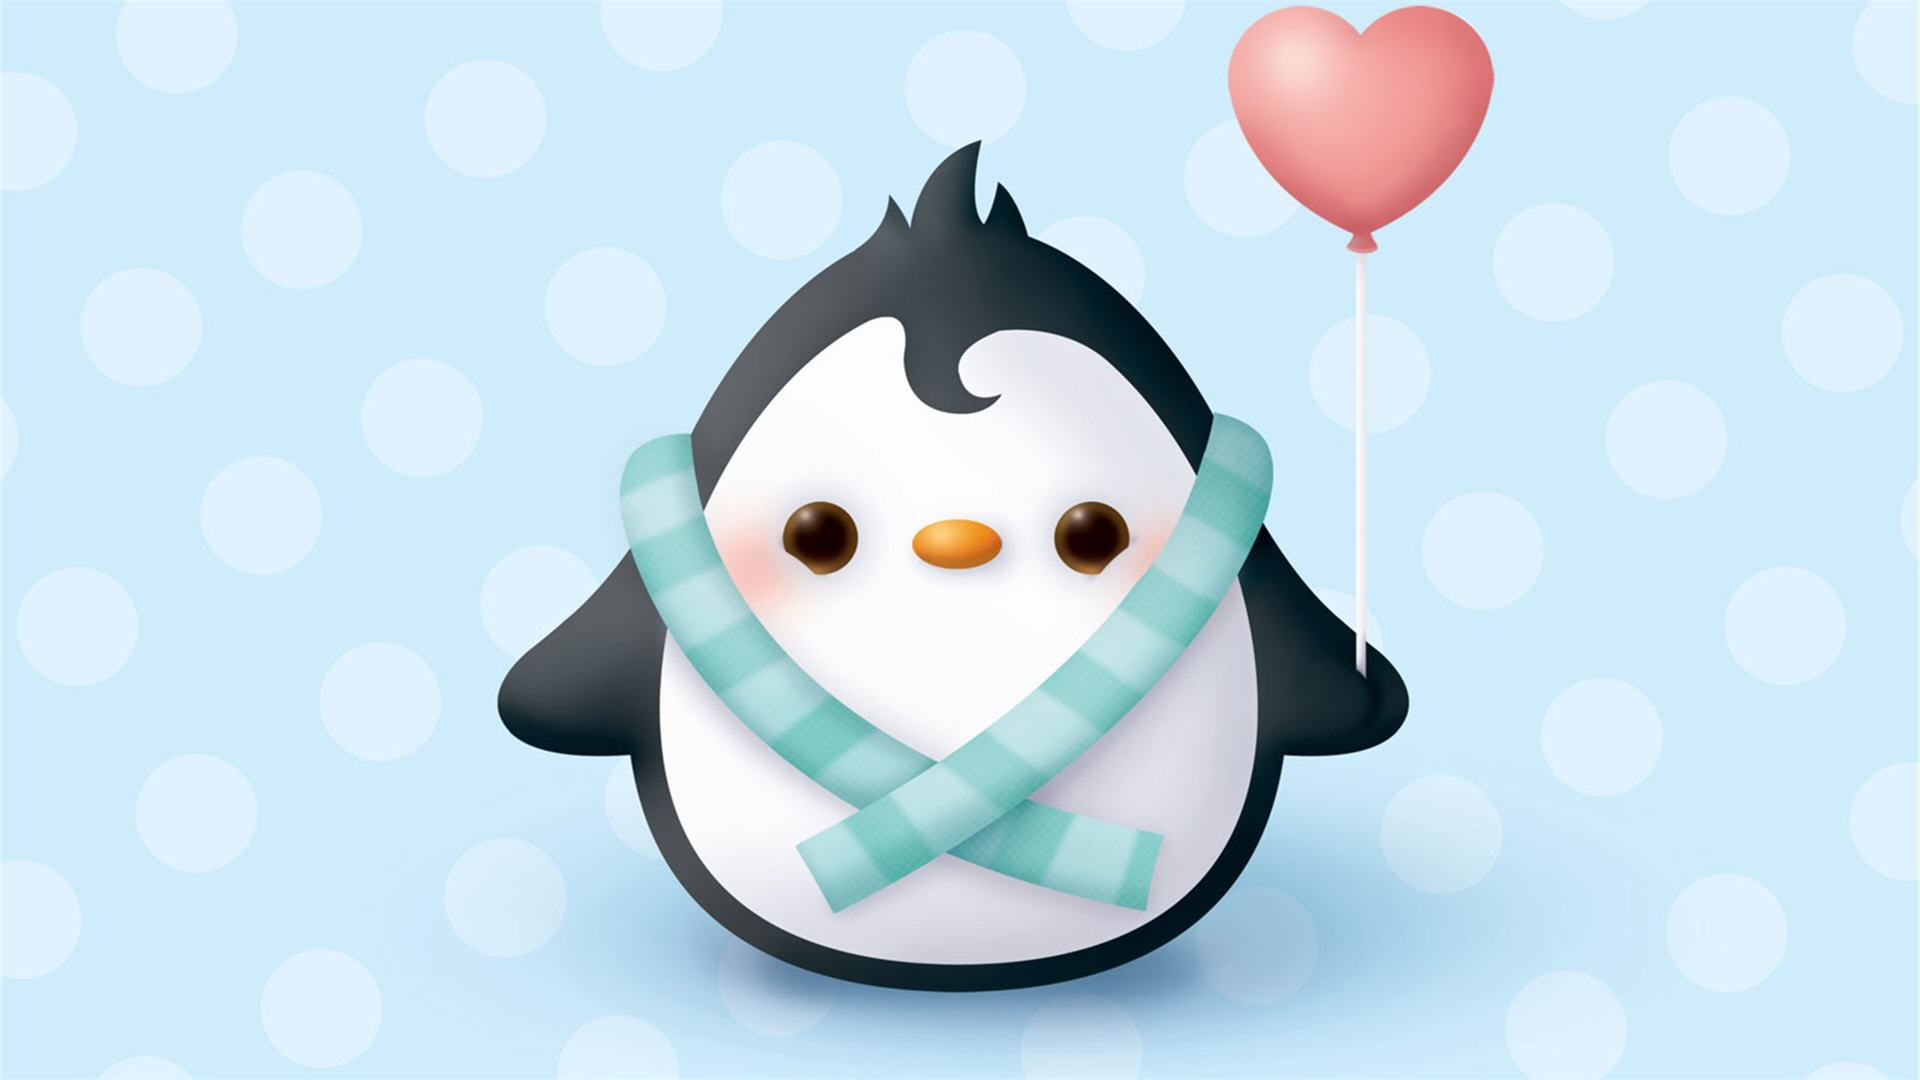 moving penguin wallpapers wallpapersafari cute snowman face clipart cute snowman clipart black and white